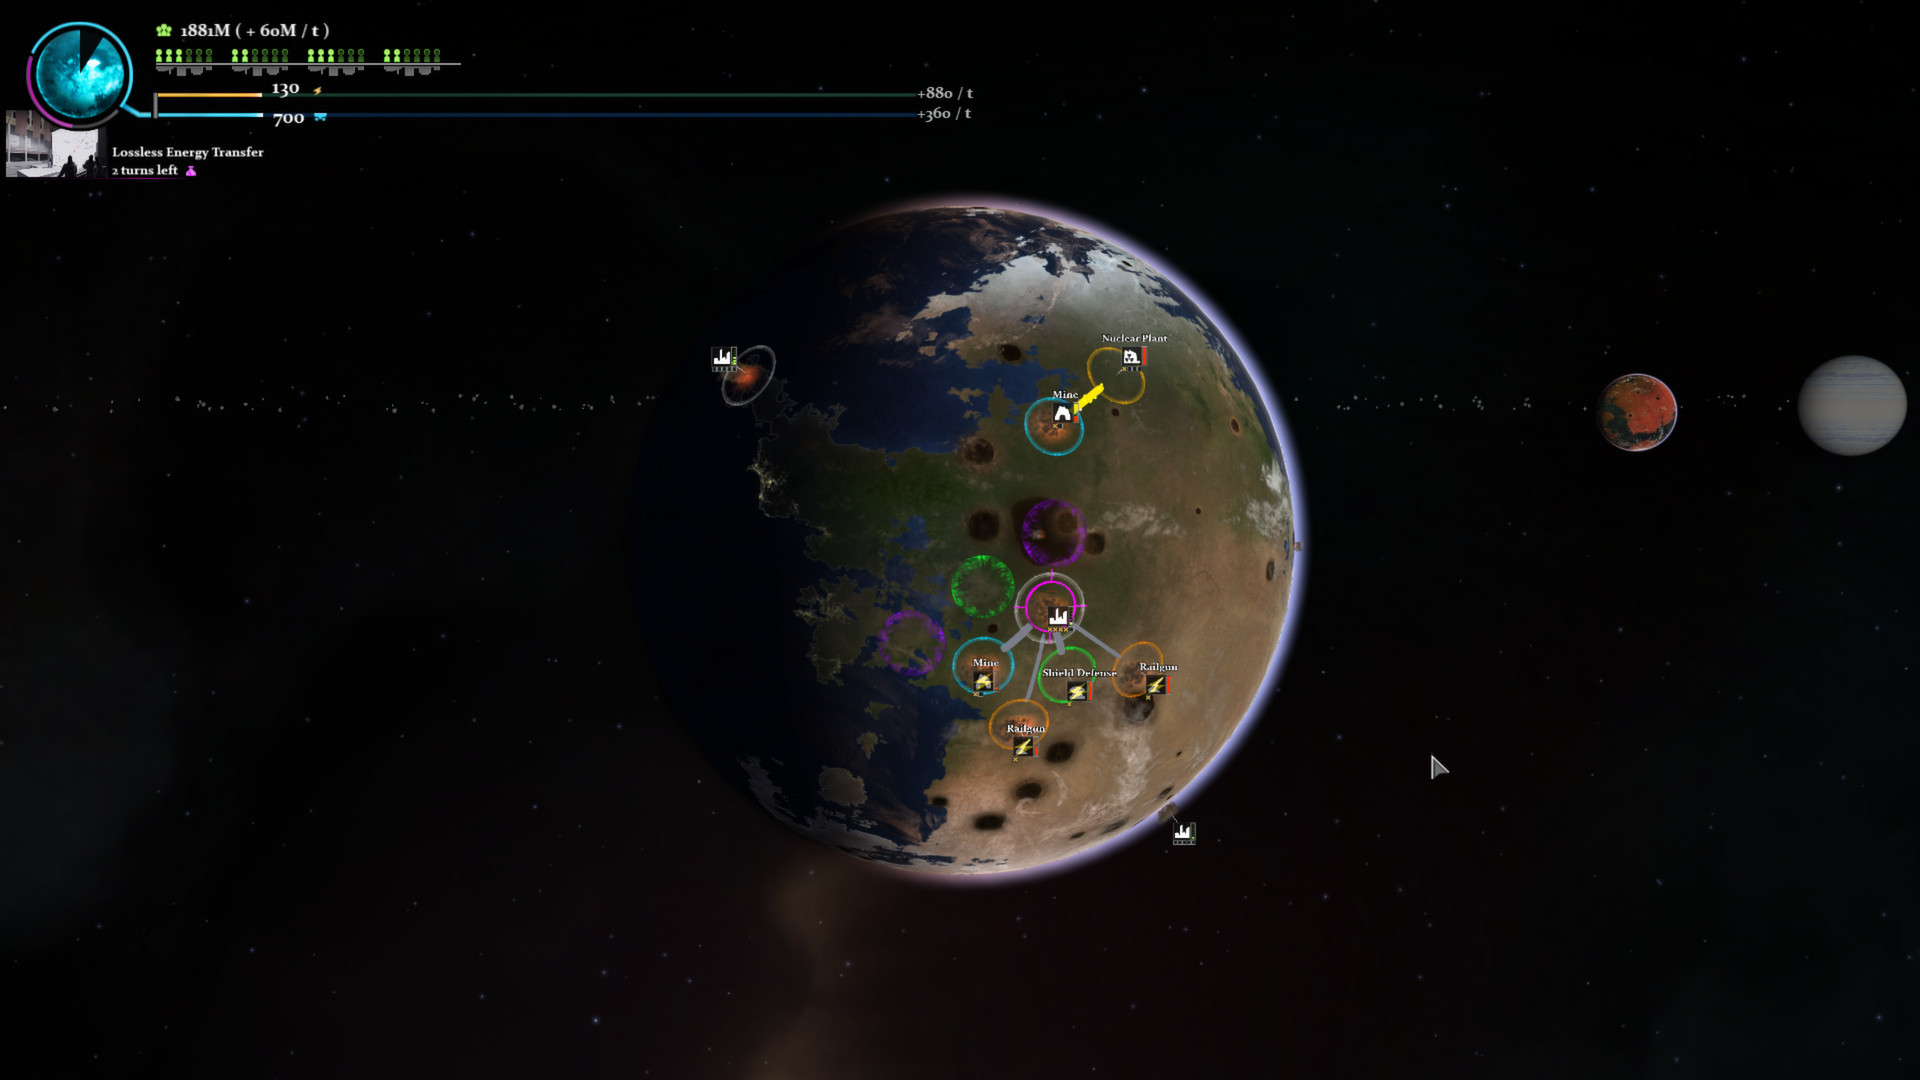 Iiterplanetary_available_on_early_access_for_linux_mac_and_windows_pc